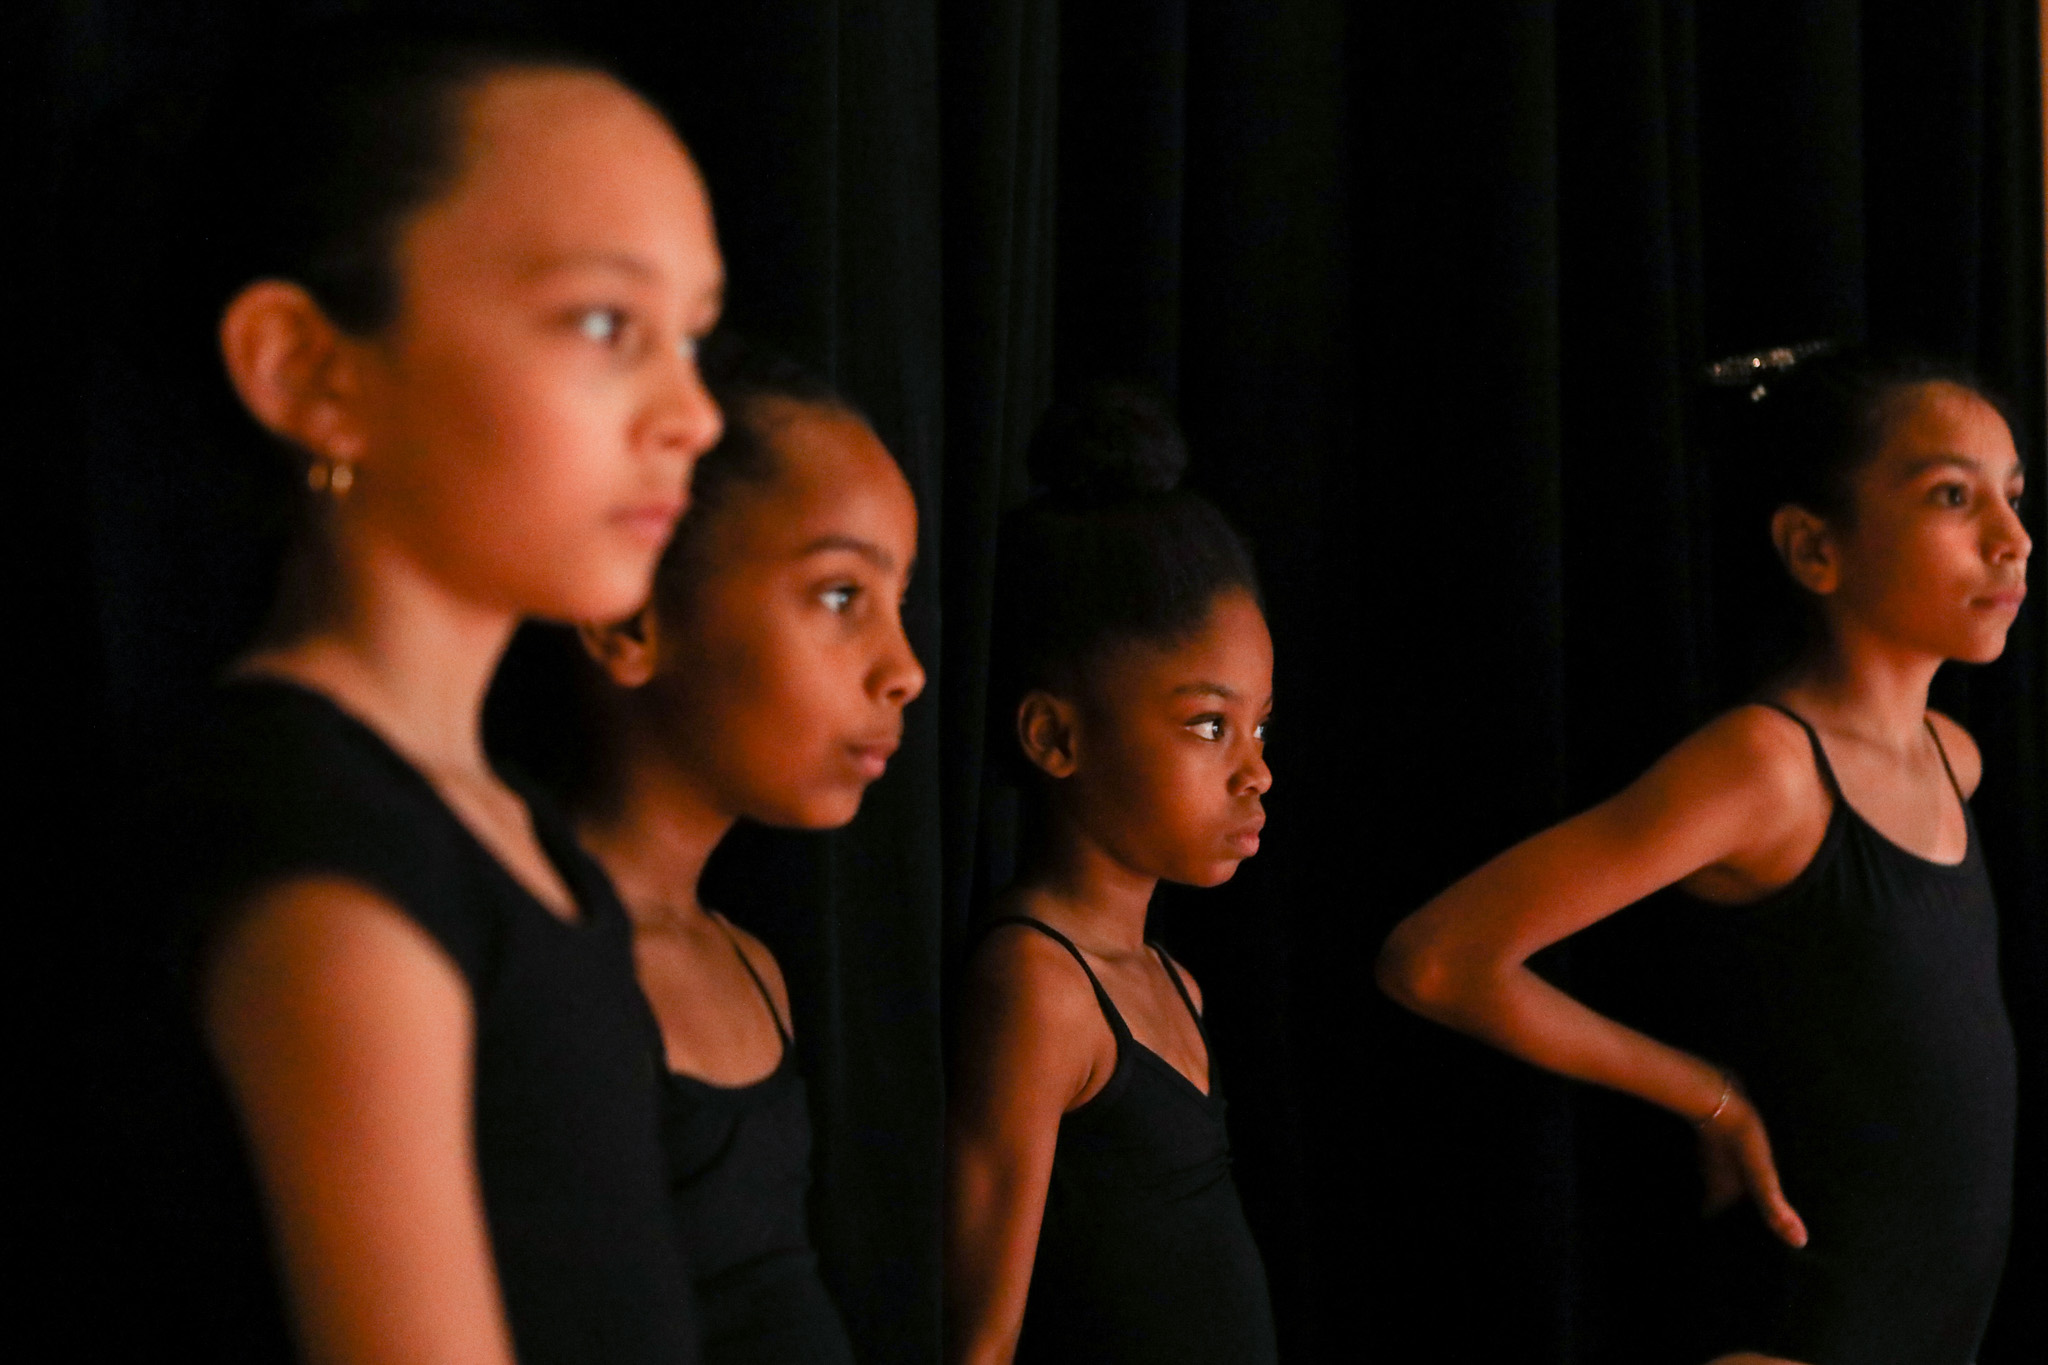 Dancers line up to practice for their final performance at the Carver's Summer Dance Intensive Program taught by Dallas Black Dance Theatre professional dancers.